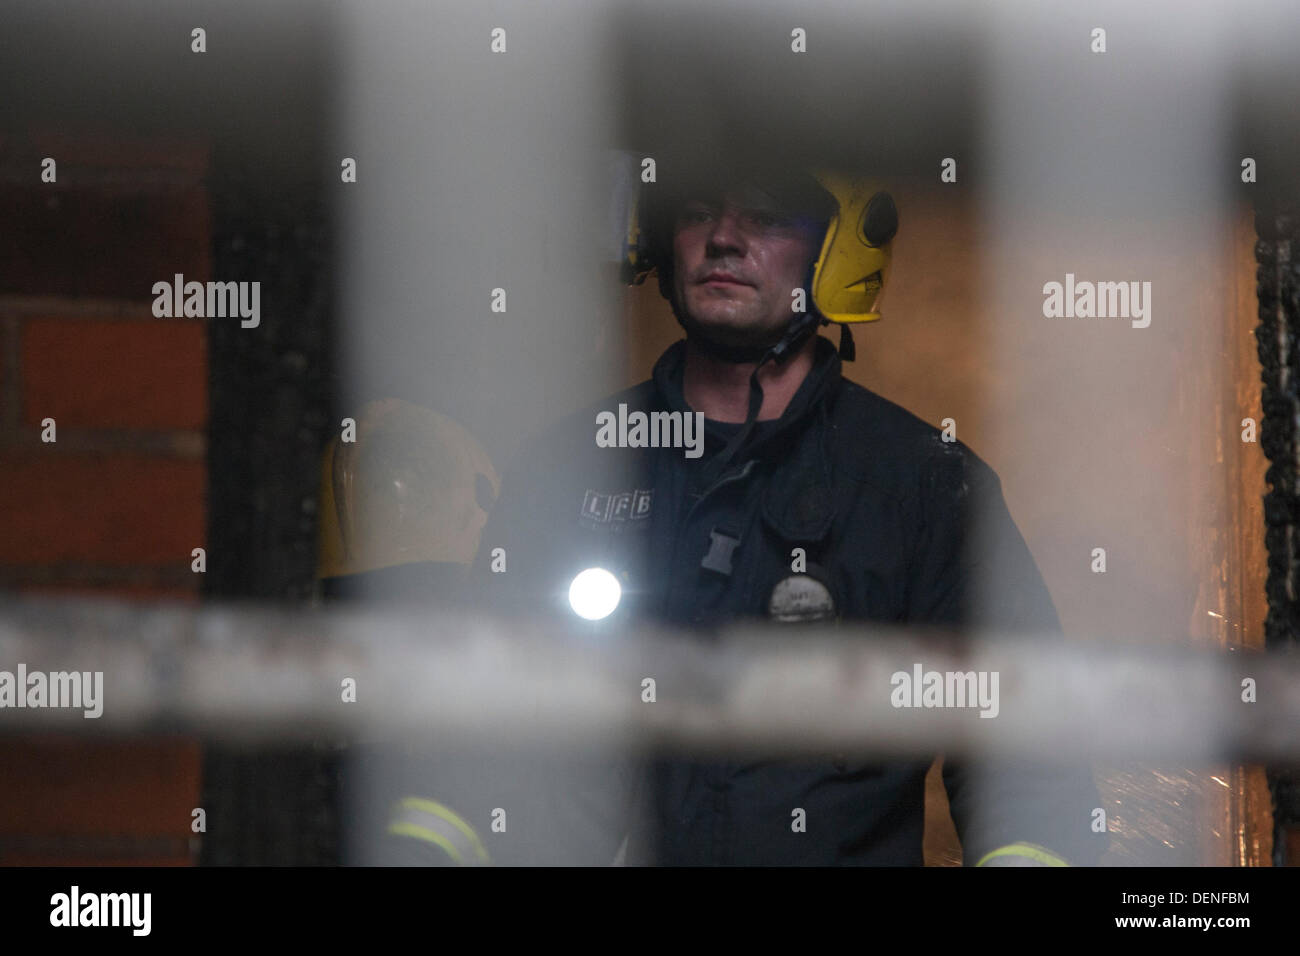 London, UK. 22nd Sep, 2013.  A firefighter examines the damage after a fire in a ground floor flat,  in Albert Mansions, Kensington, across the road from The Royal Albert Hall. Credit:  Paul Davey/Alamy Live News - Stock Image